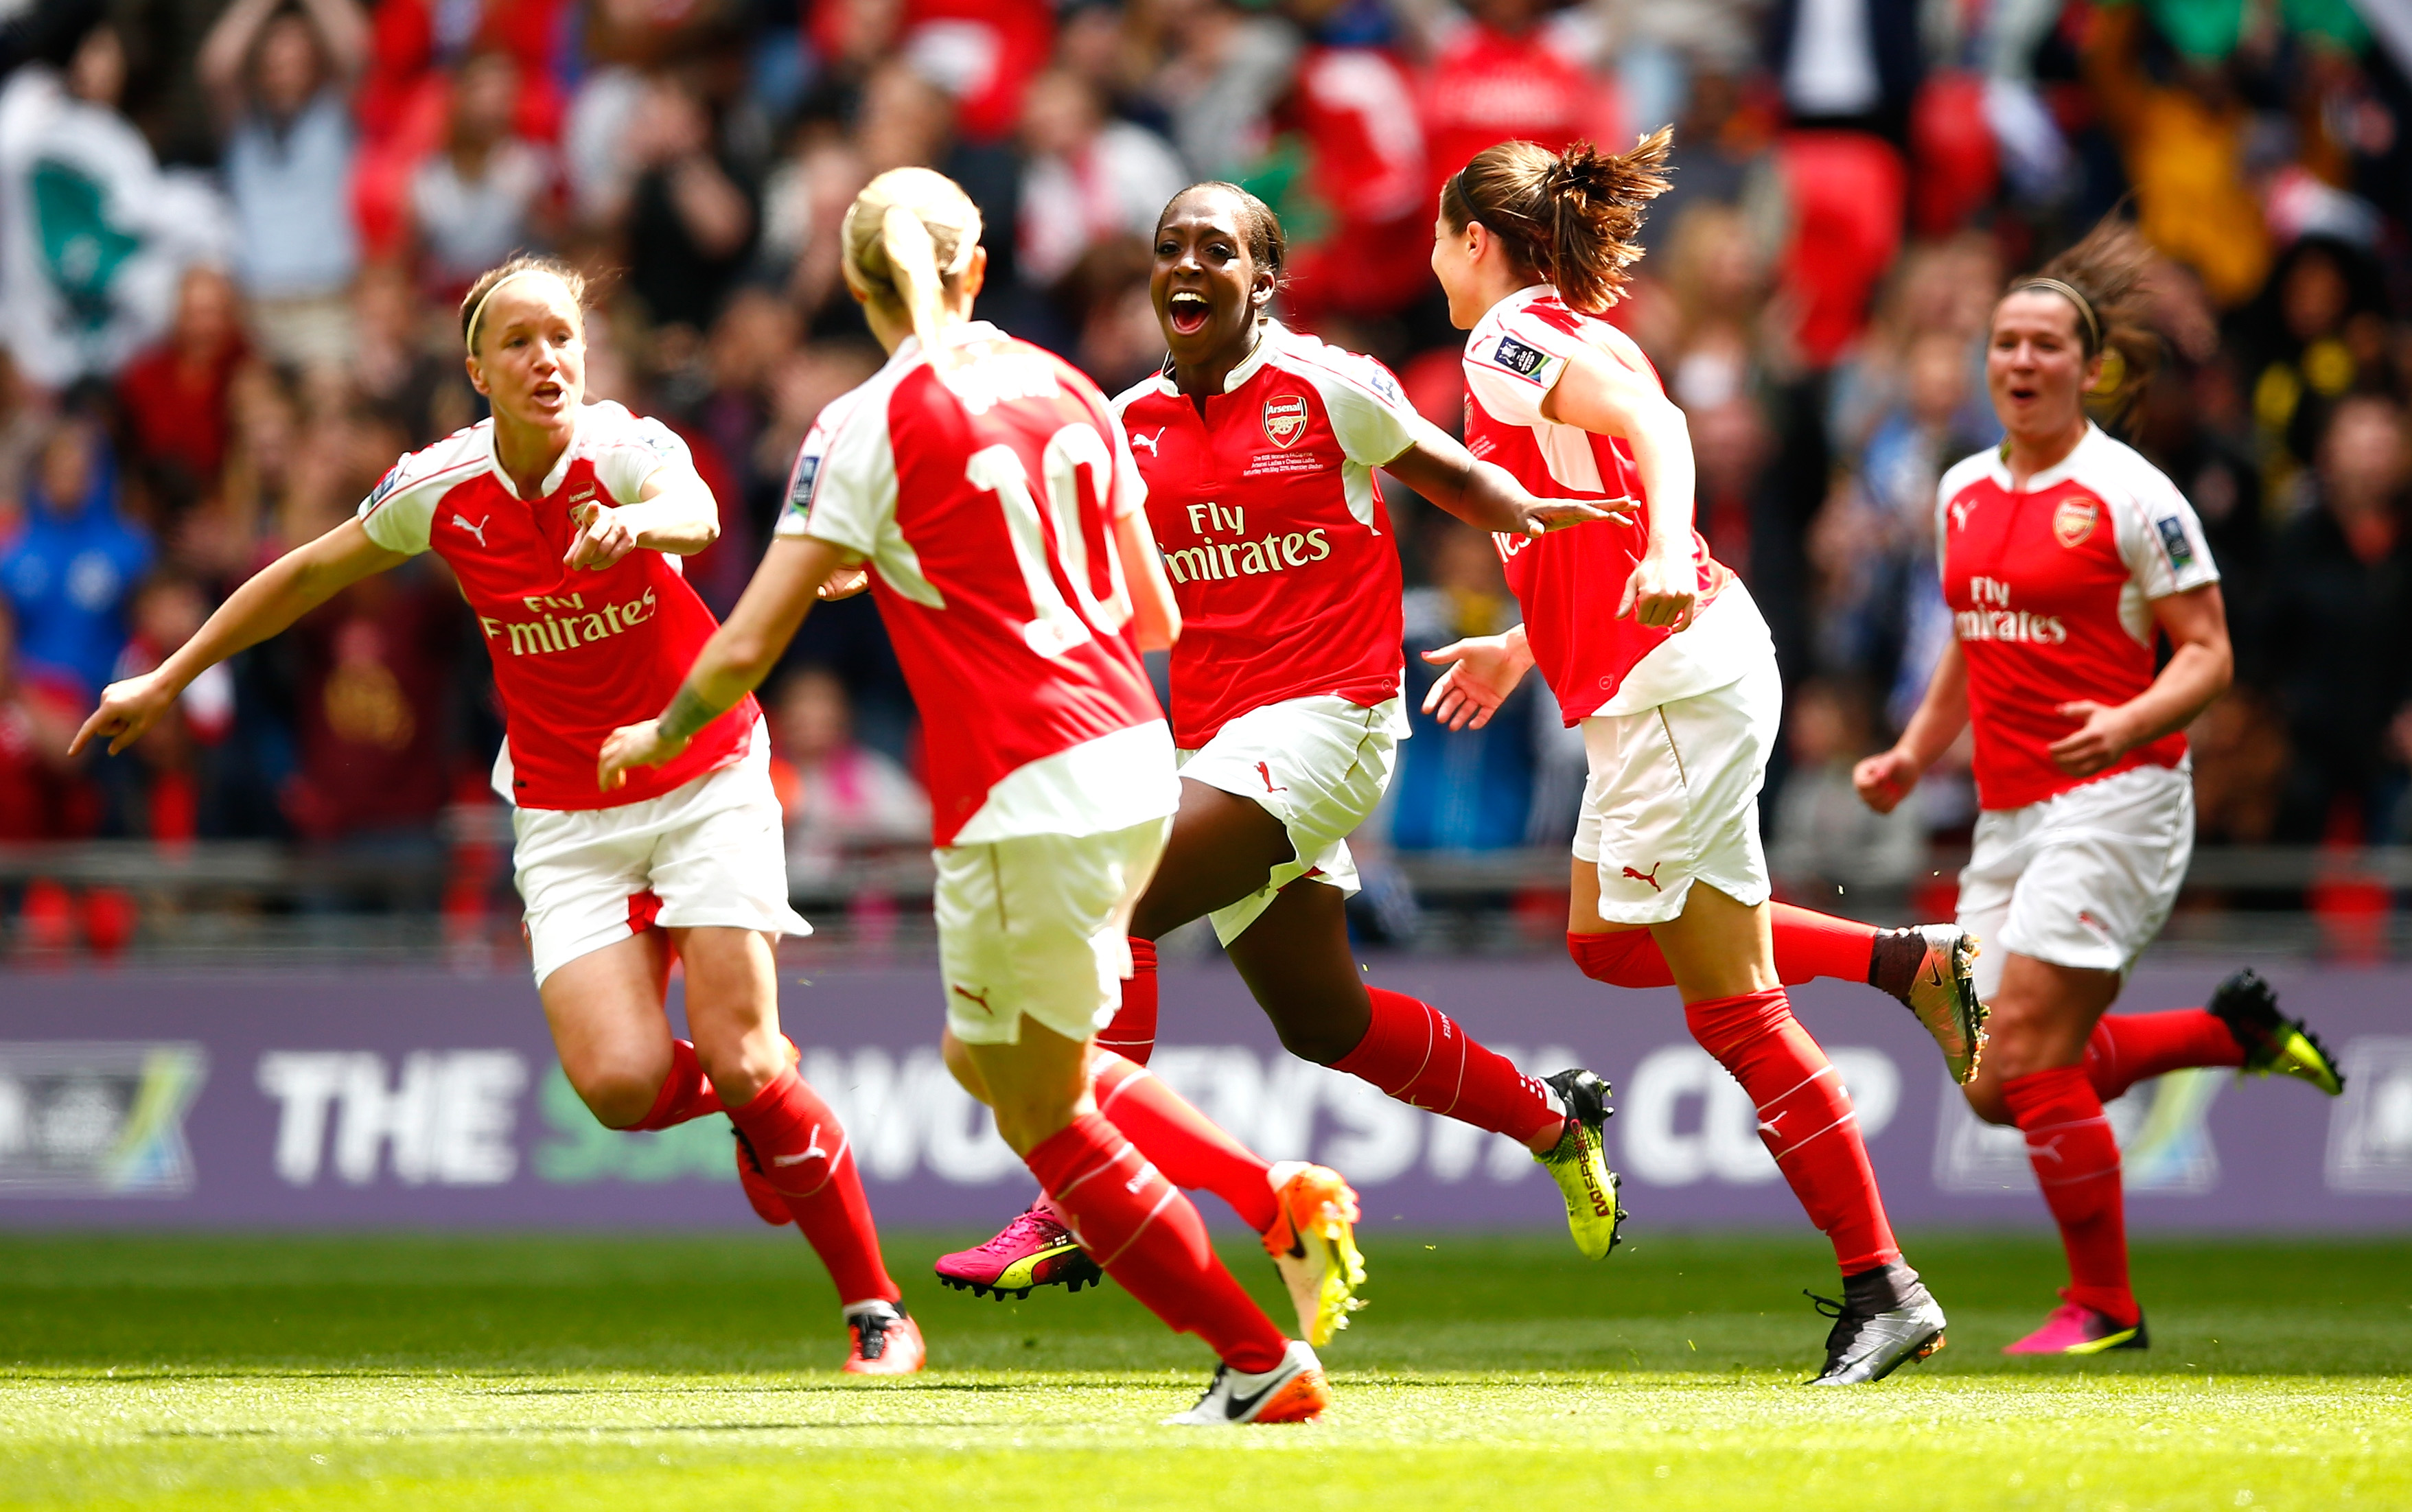 """LONDON, ENGLAND - MAY 14: Danielle Carter (C) of Arsenal celebrates scoring his team's first goal with her team mates during the SSE Women's FA Cup Final between Arsenal Ladies and Chelsea Ladies at Wembley Stadium on May 14, 2016 in London, England. (Photo by Christopher Lee - The FA/The FA via Getty Images)"""